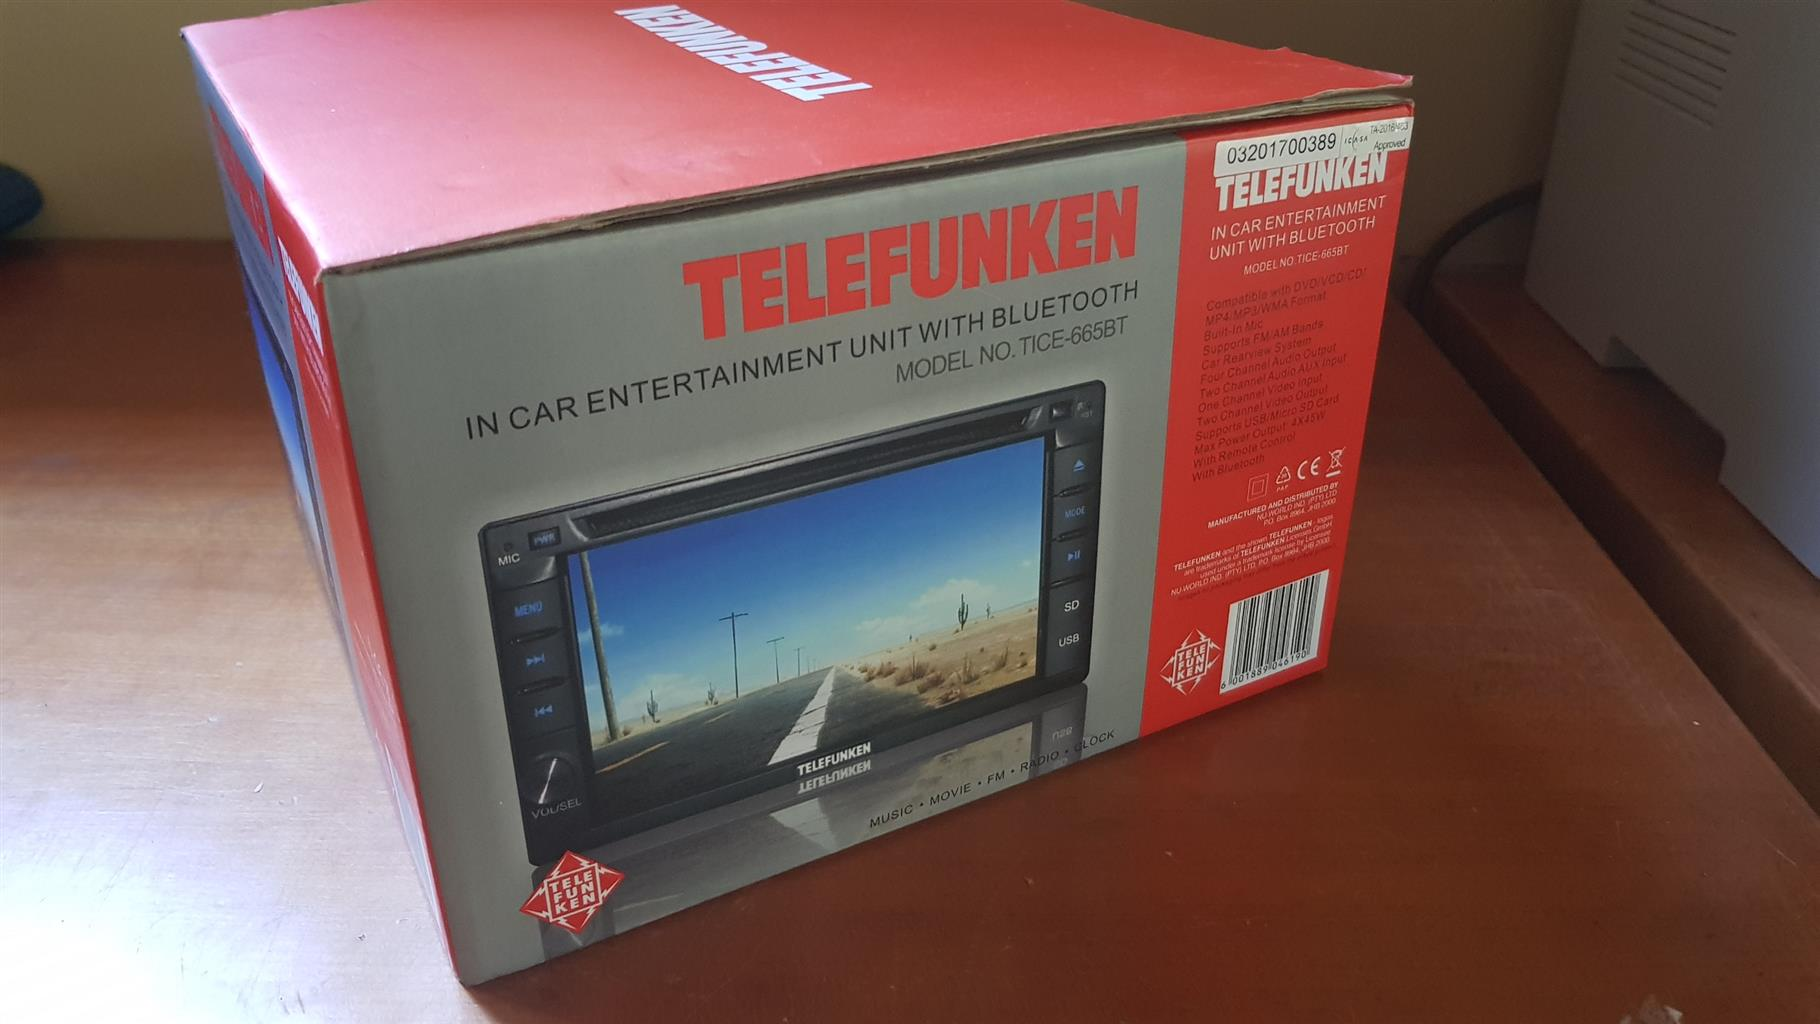 "Telefunken TICE-665BT Bluetooth Car DVD Entertainment System with 6.2"" Touch Screen"